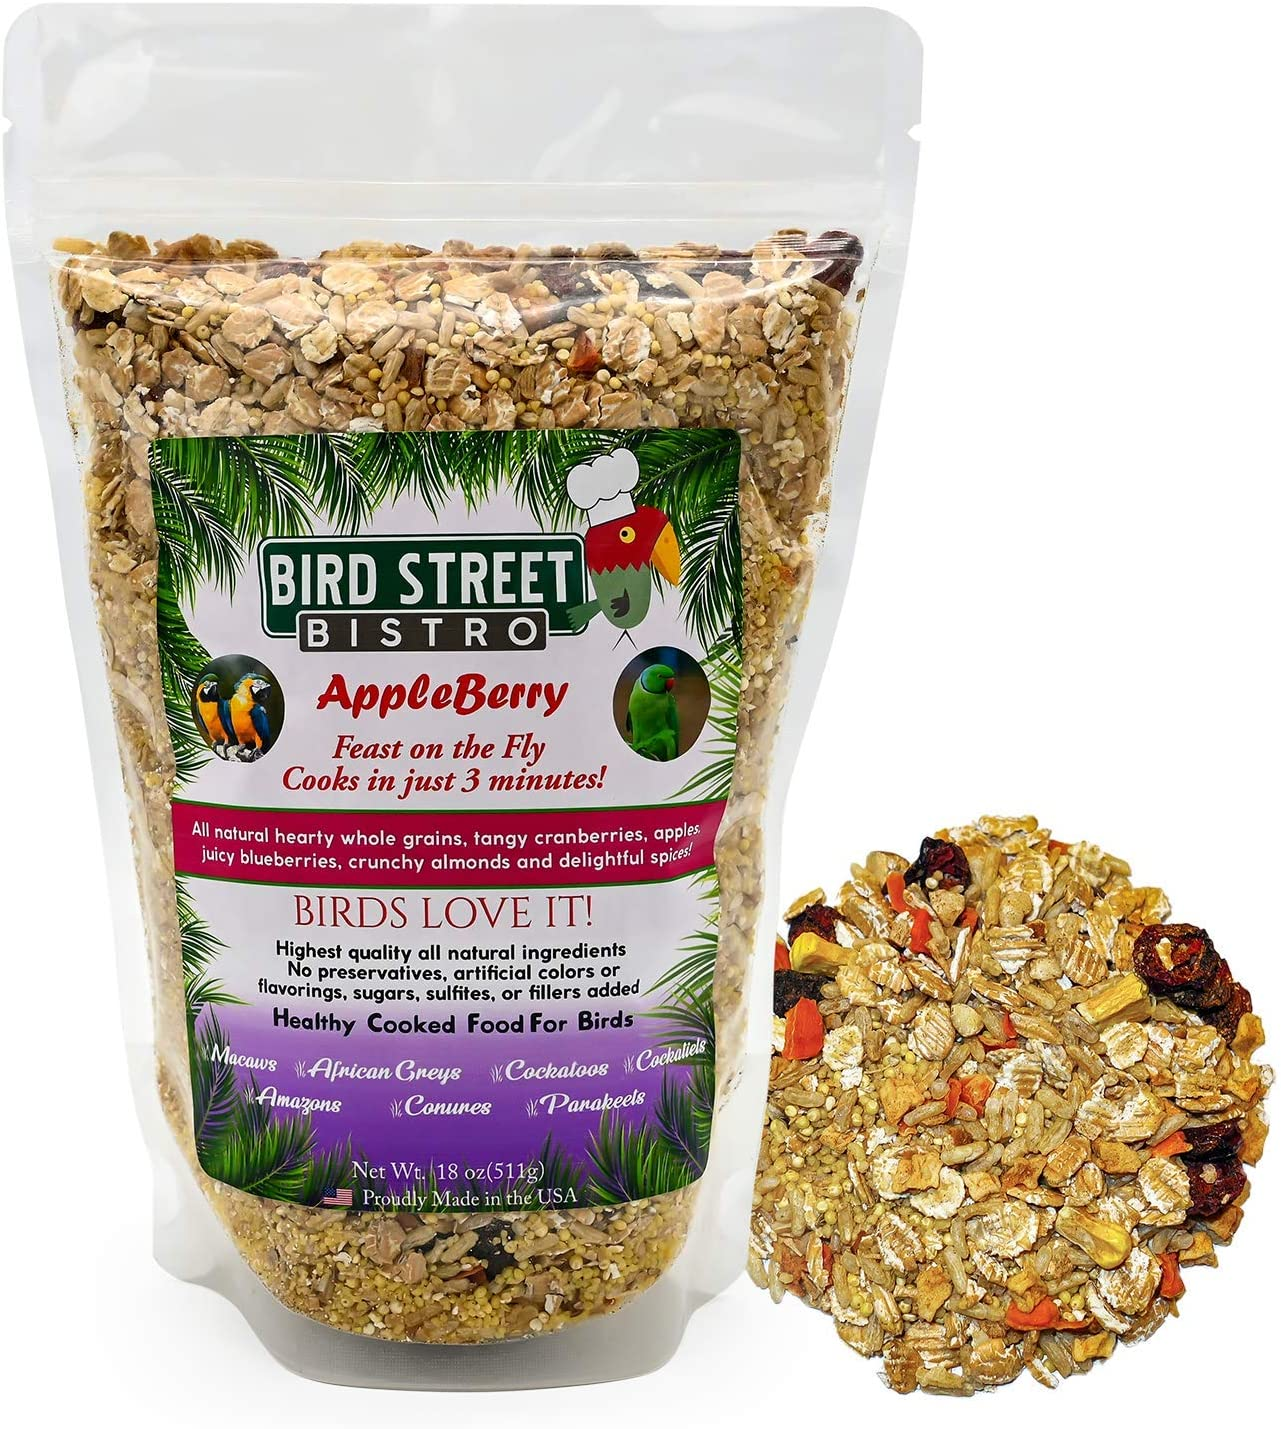 Bird Street Bistro Parrot Food Cooks in 3-15 min| Natural & Organic Grains and Legumes, Healthy, Non-GMO Fruits, Vegetables, Healthy Nuts, and Spices - No Fillers, Sugars, or Sulfites